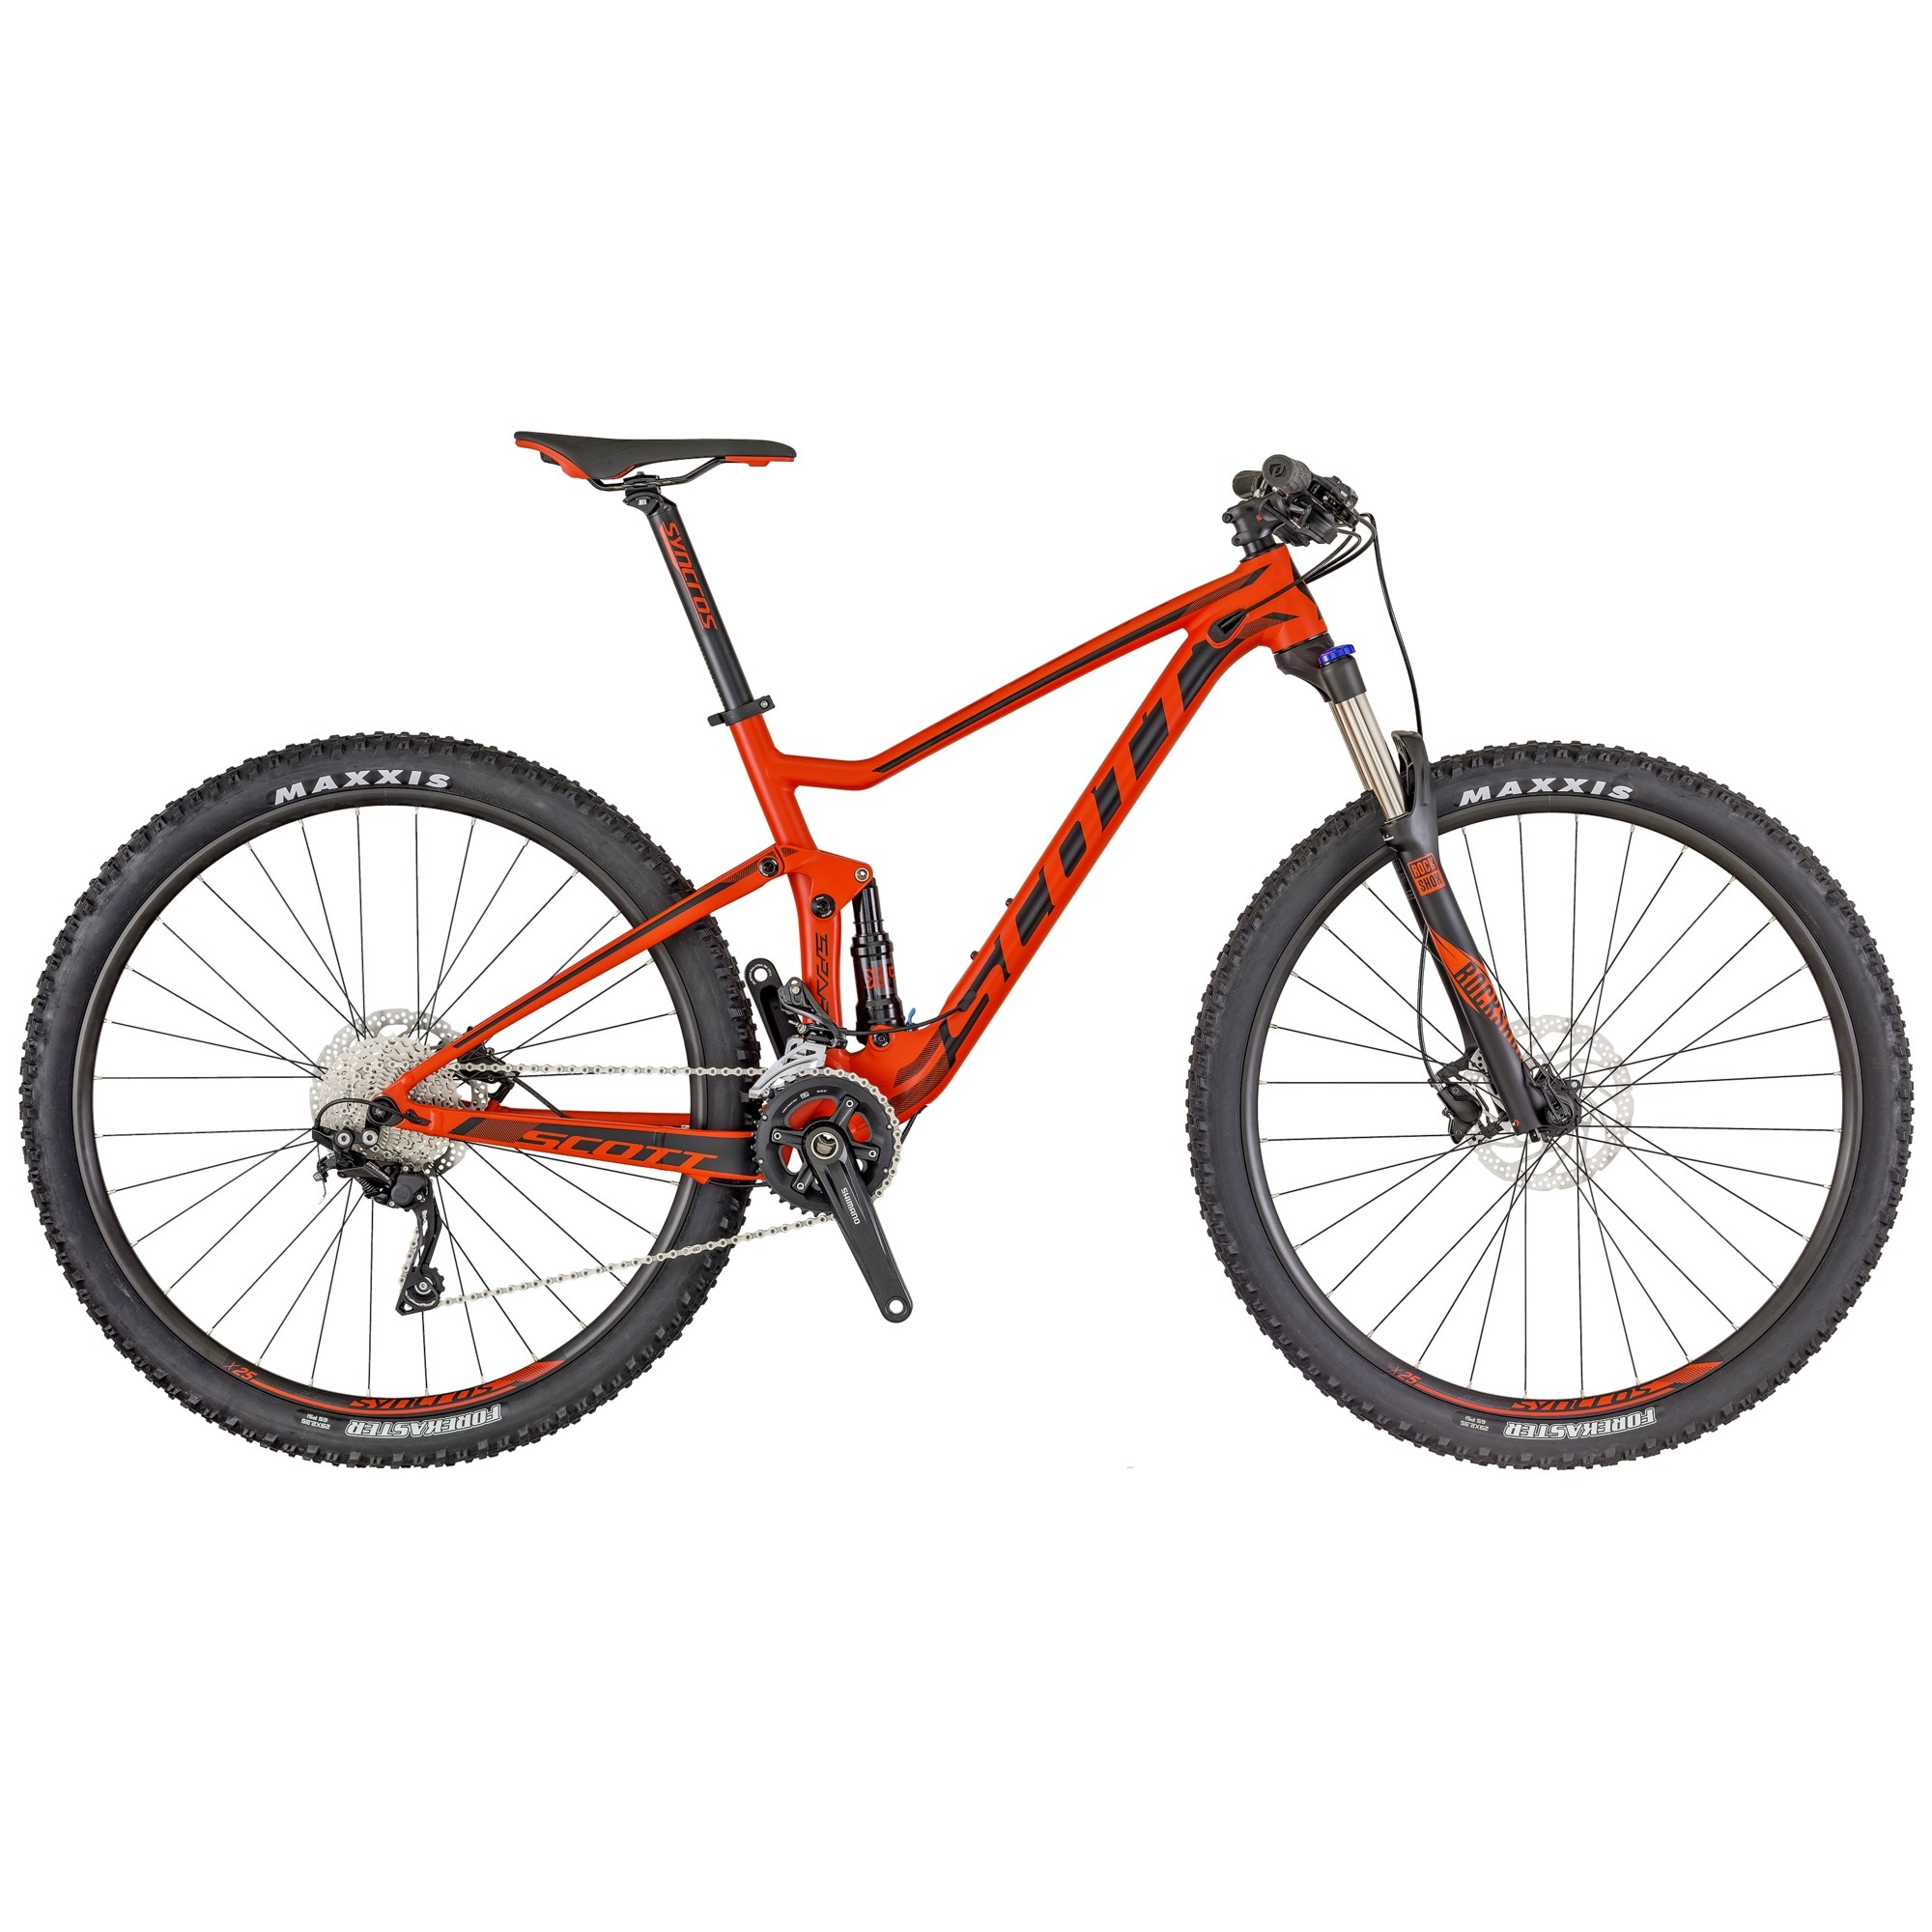 SCOTT Spark 970 Bike XL - Zweirad Homann